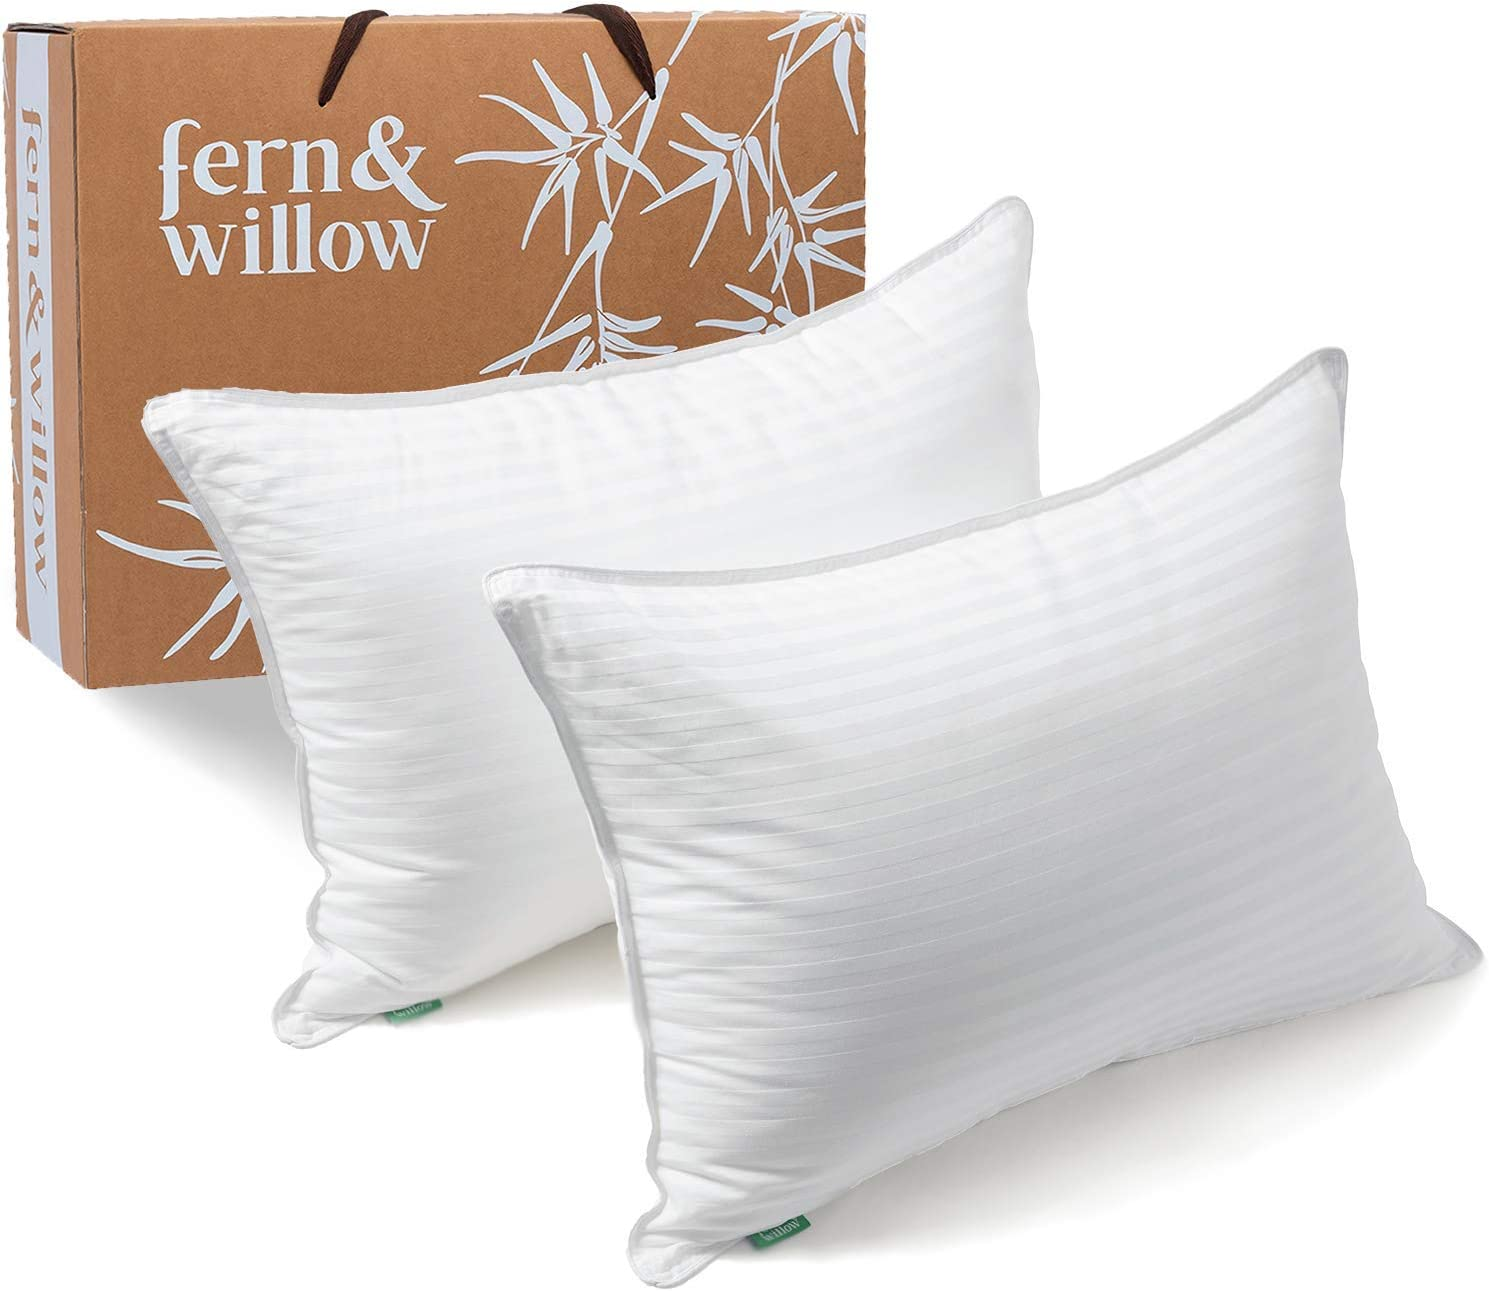 Fern and Willow Pillows for Sleeping - Standard Size, 2 Pack - Premium Down Alternative, Hotel Bed Pillow Set - Luxury, Plush Cooling Gel, Hypoallergenic - for Neck Pain, Back & Side Sleepers